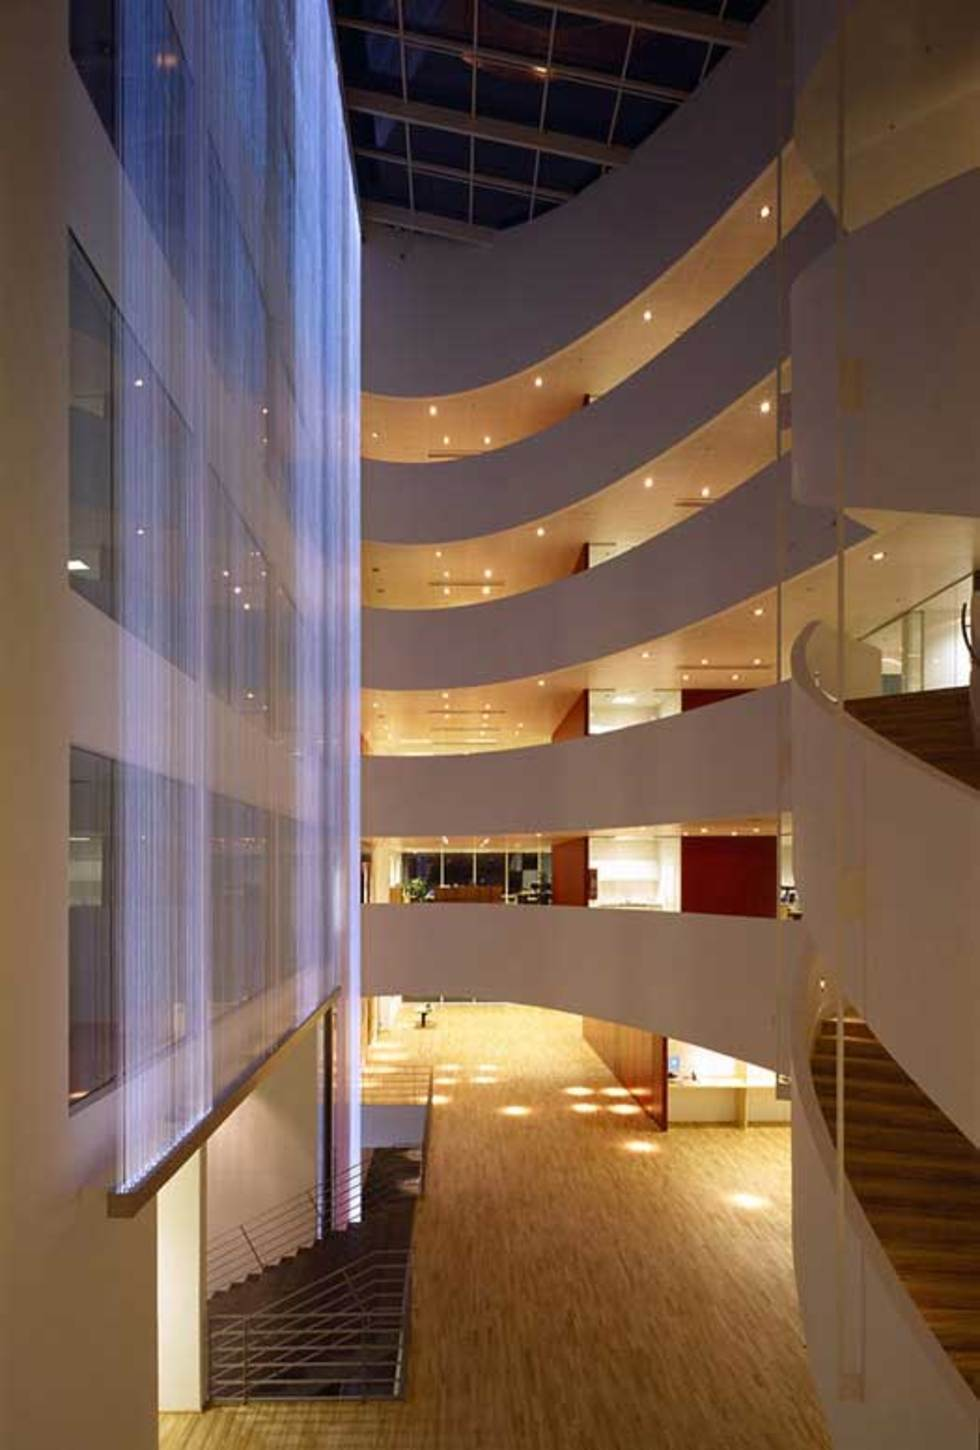 3xn-head-offices-of-sampension